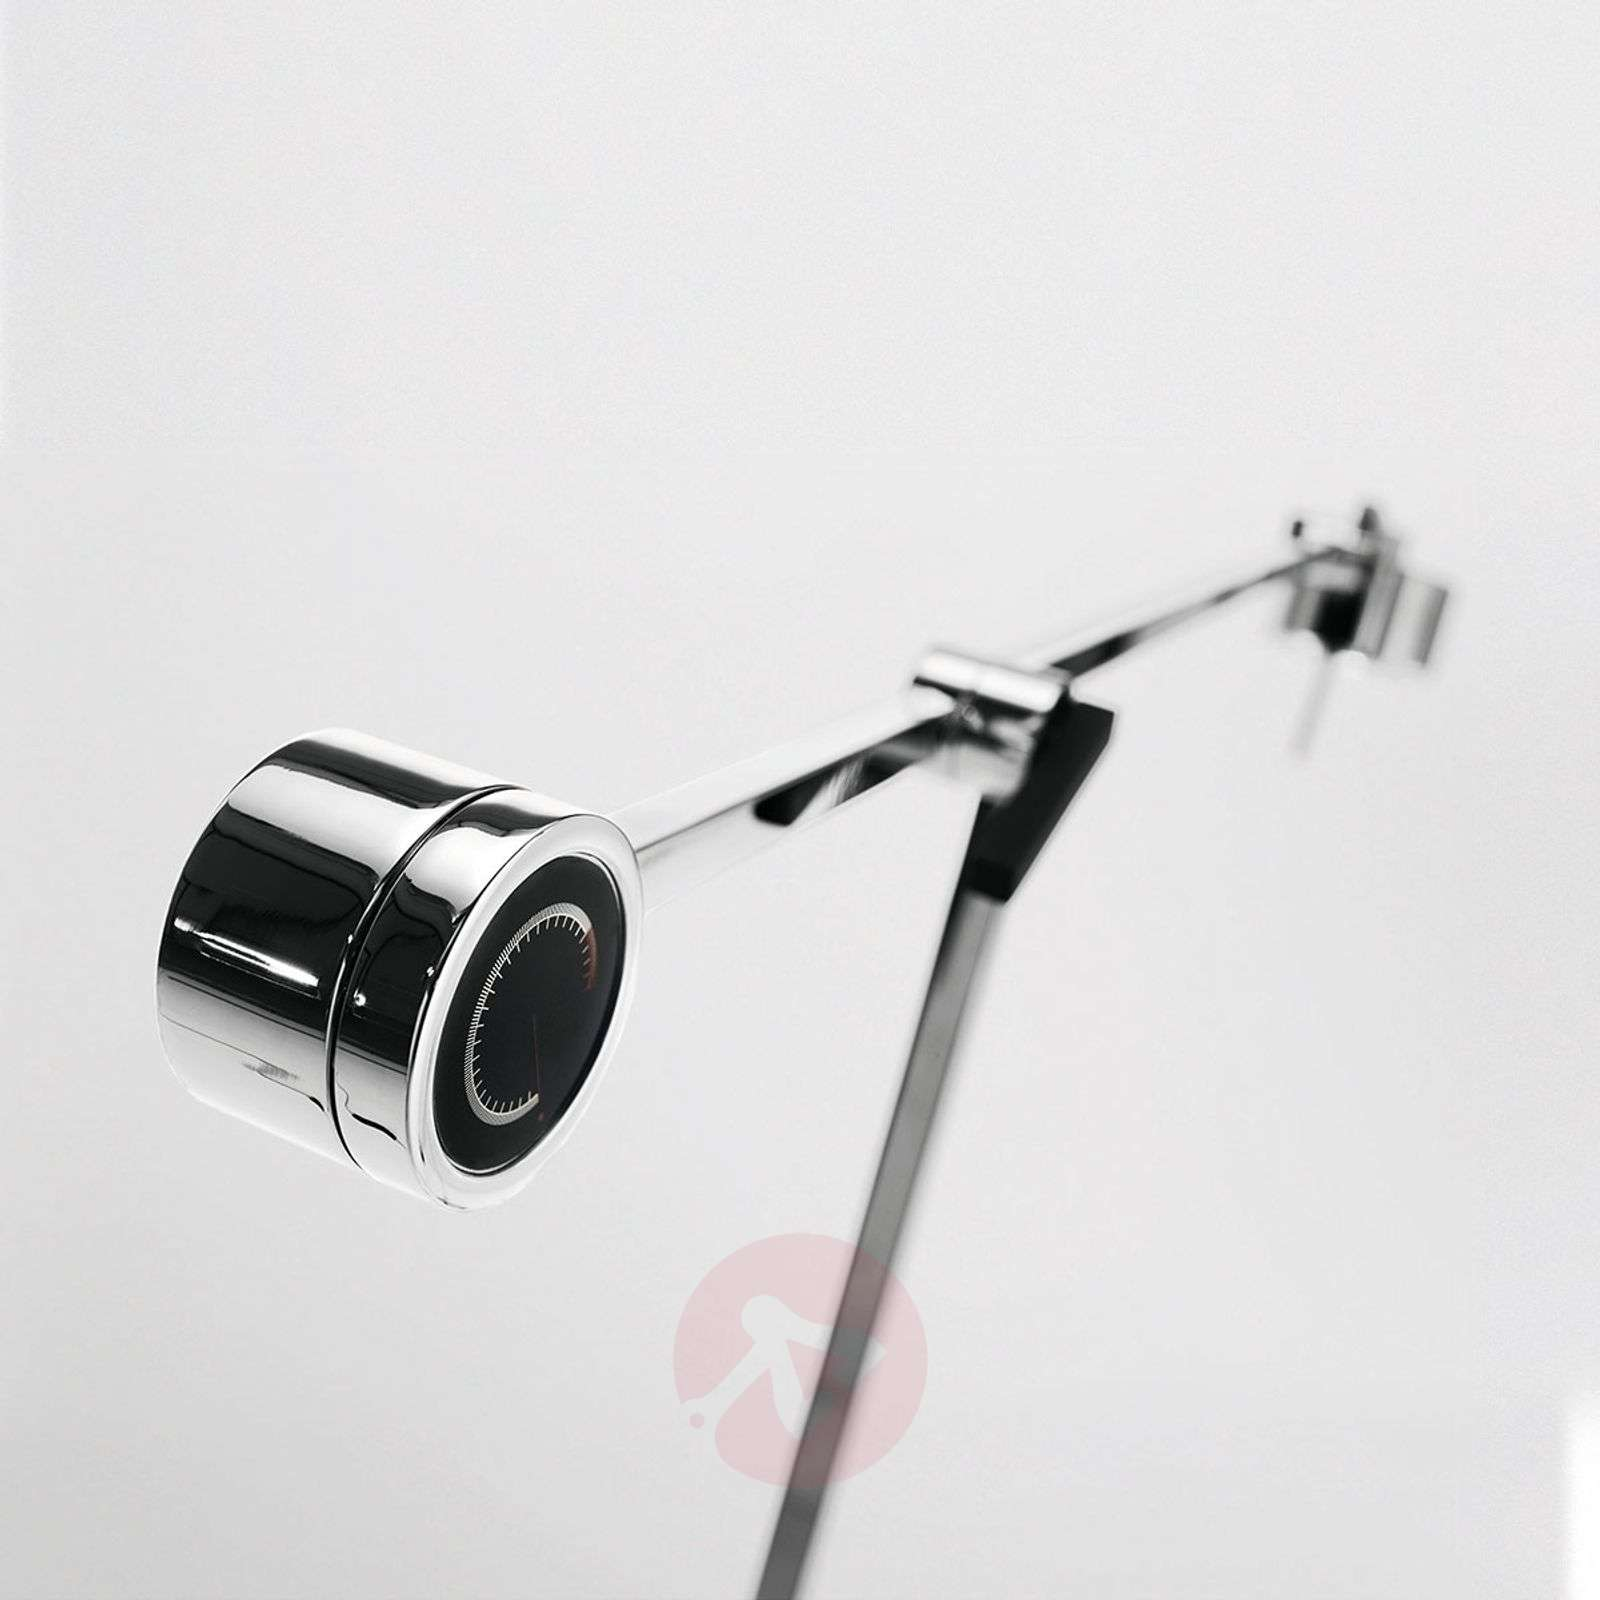 Chrome-plated desk lamp AX20 with dimmer-1088040-01